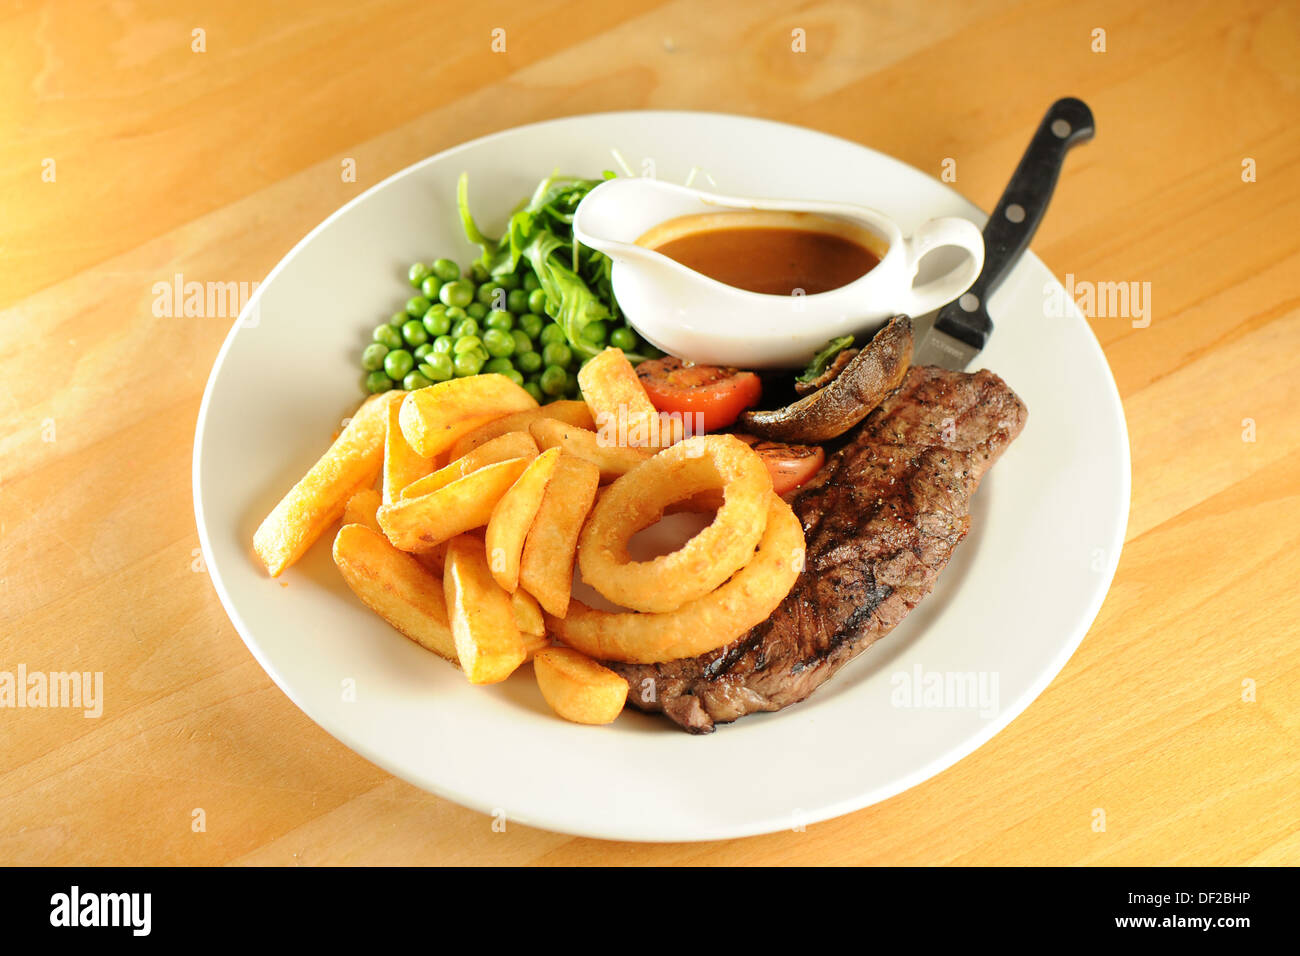 Traditional pub food - sirloin steak, onion rings and peas. - Stock Image